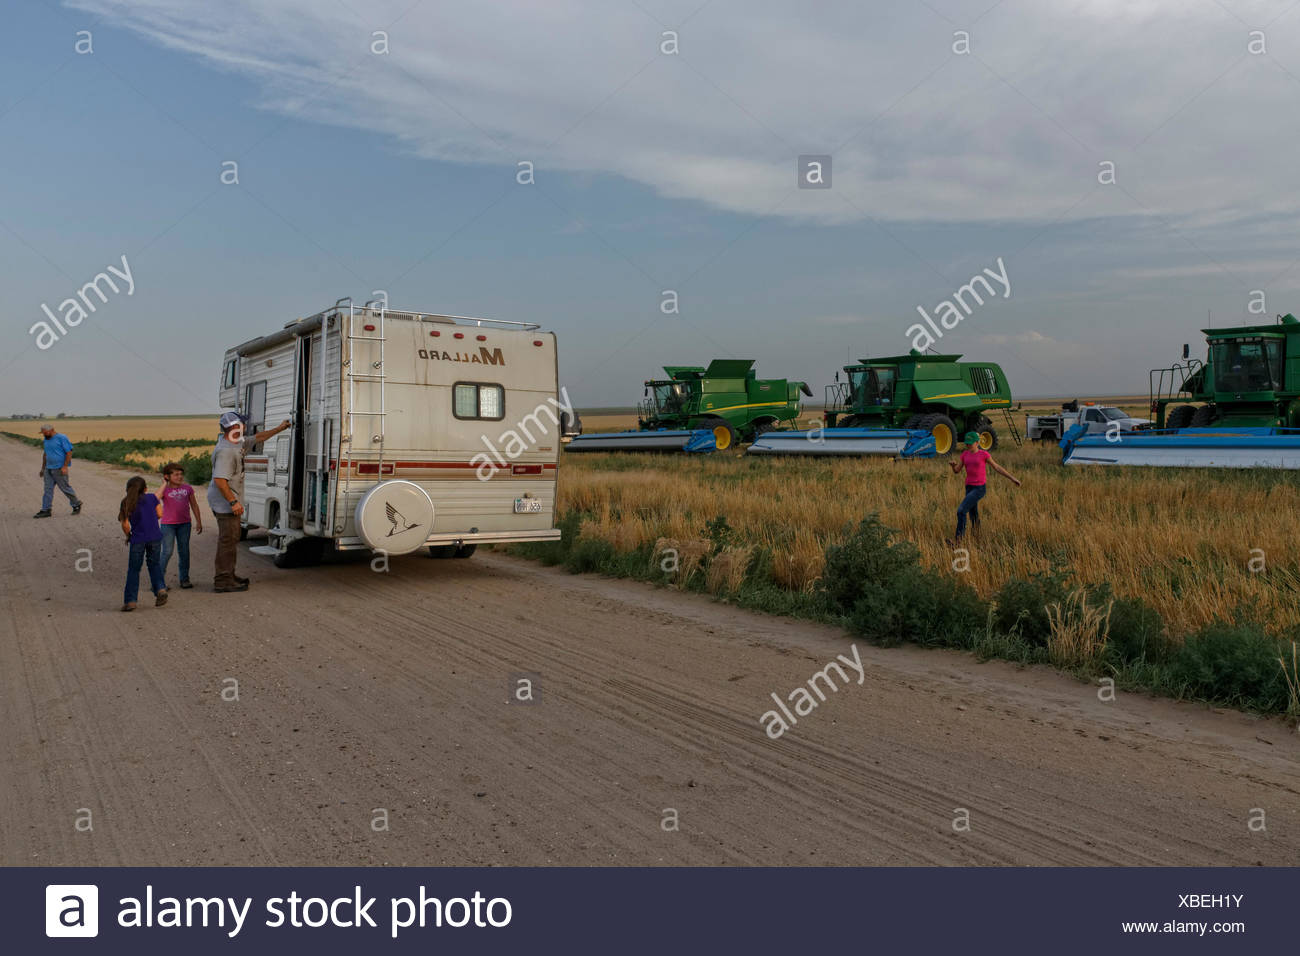 A family parks an RV in the field during the harvest so they can escape the elements and the bugs while they eat. - Stock Image